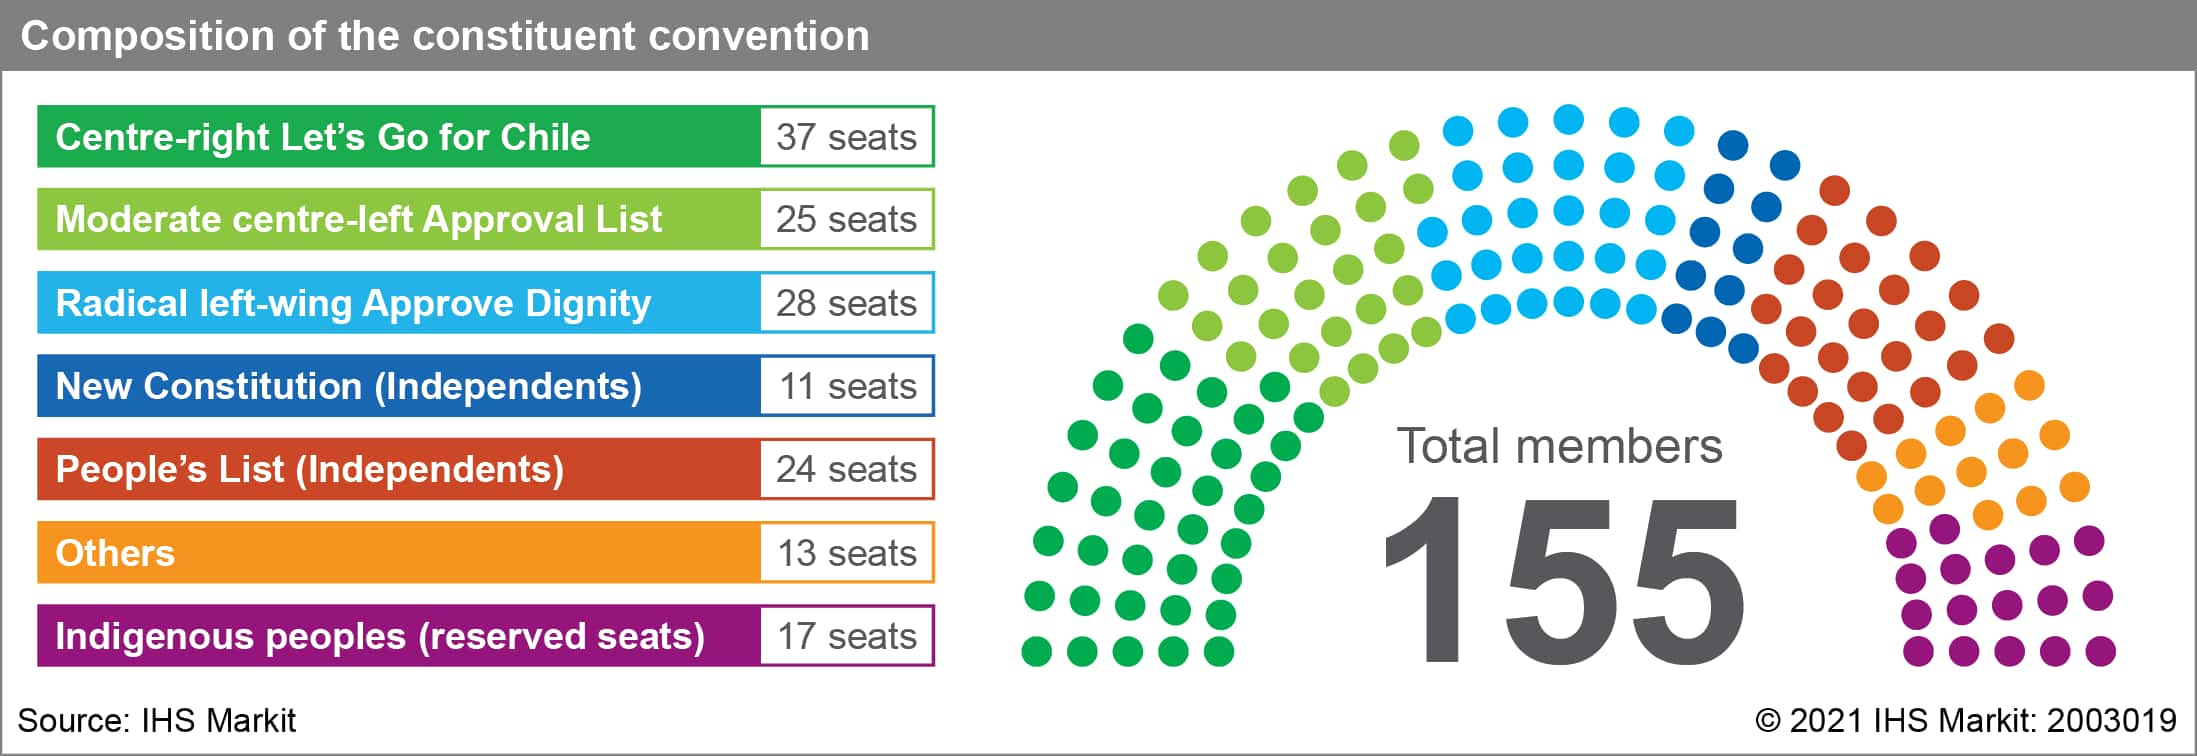 composition of chile's constitution convention